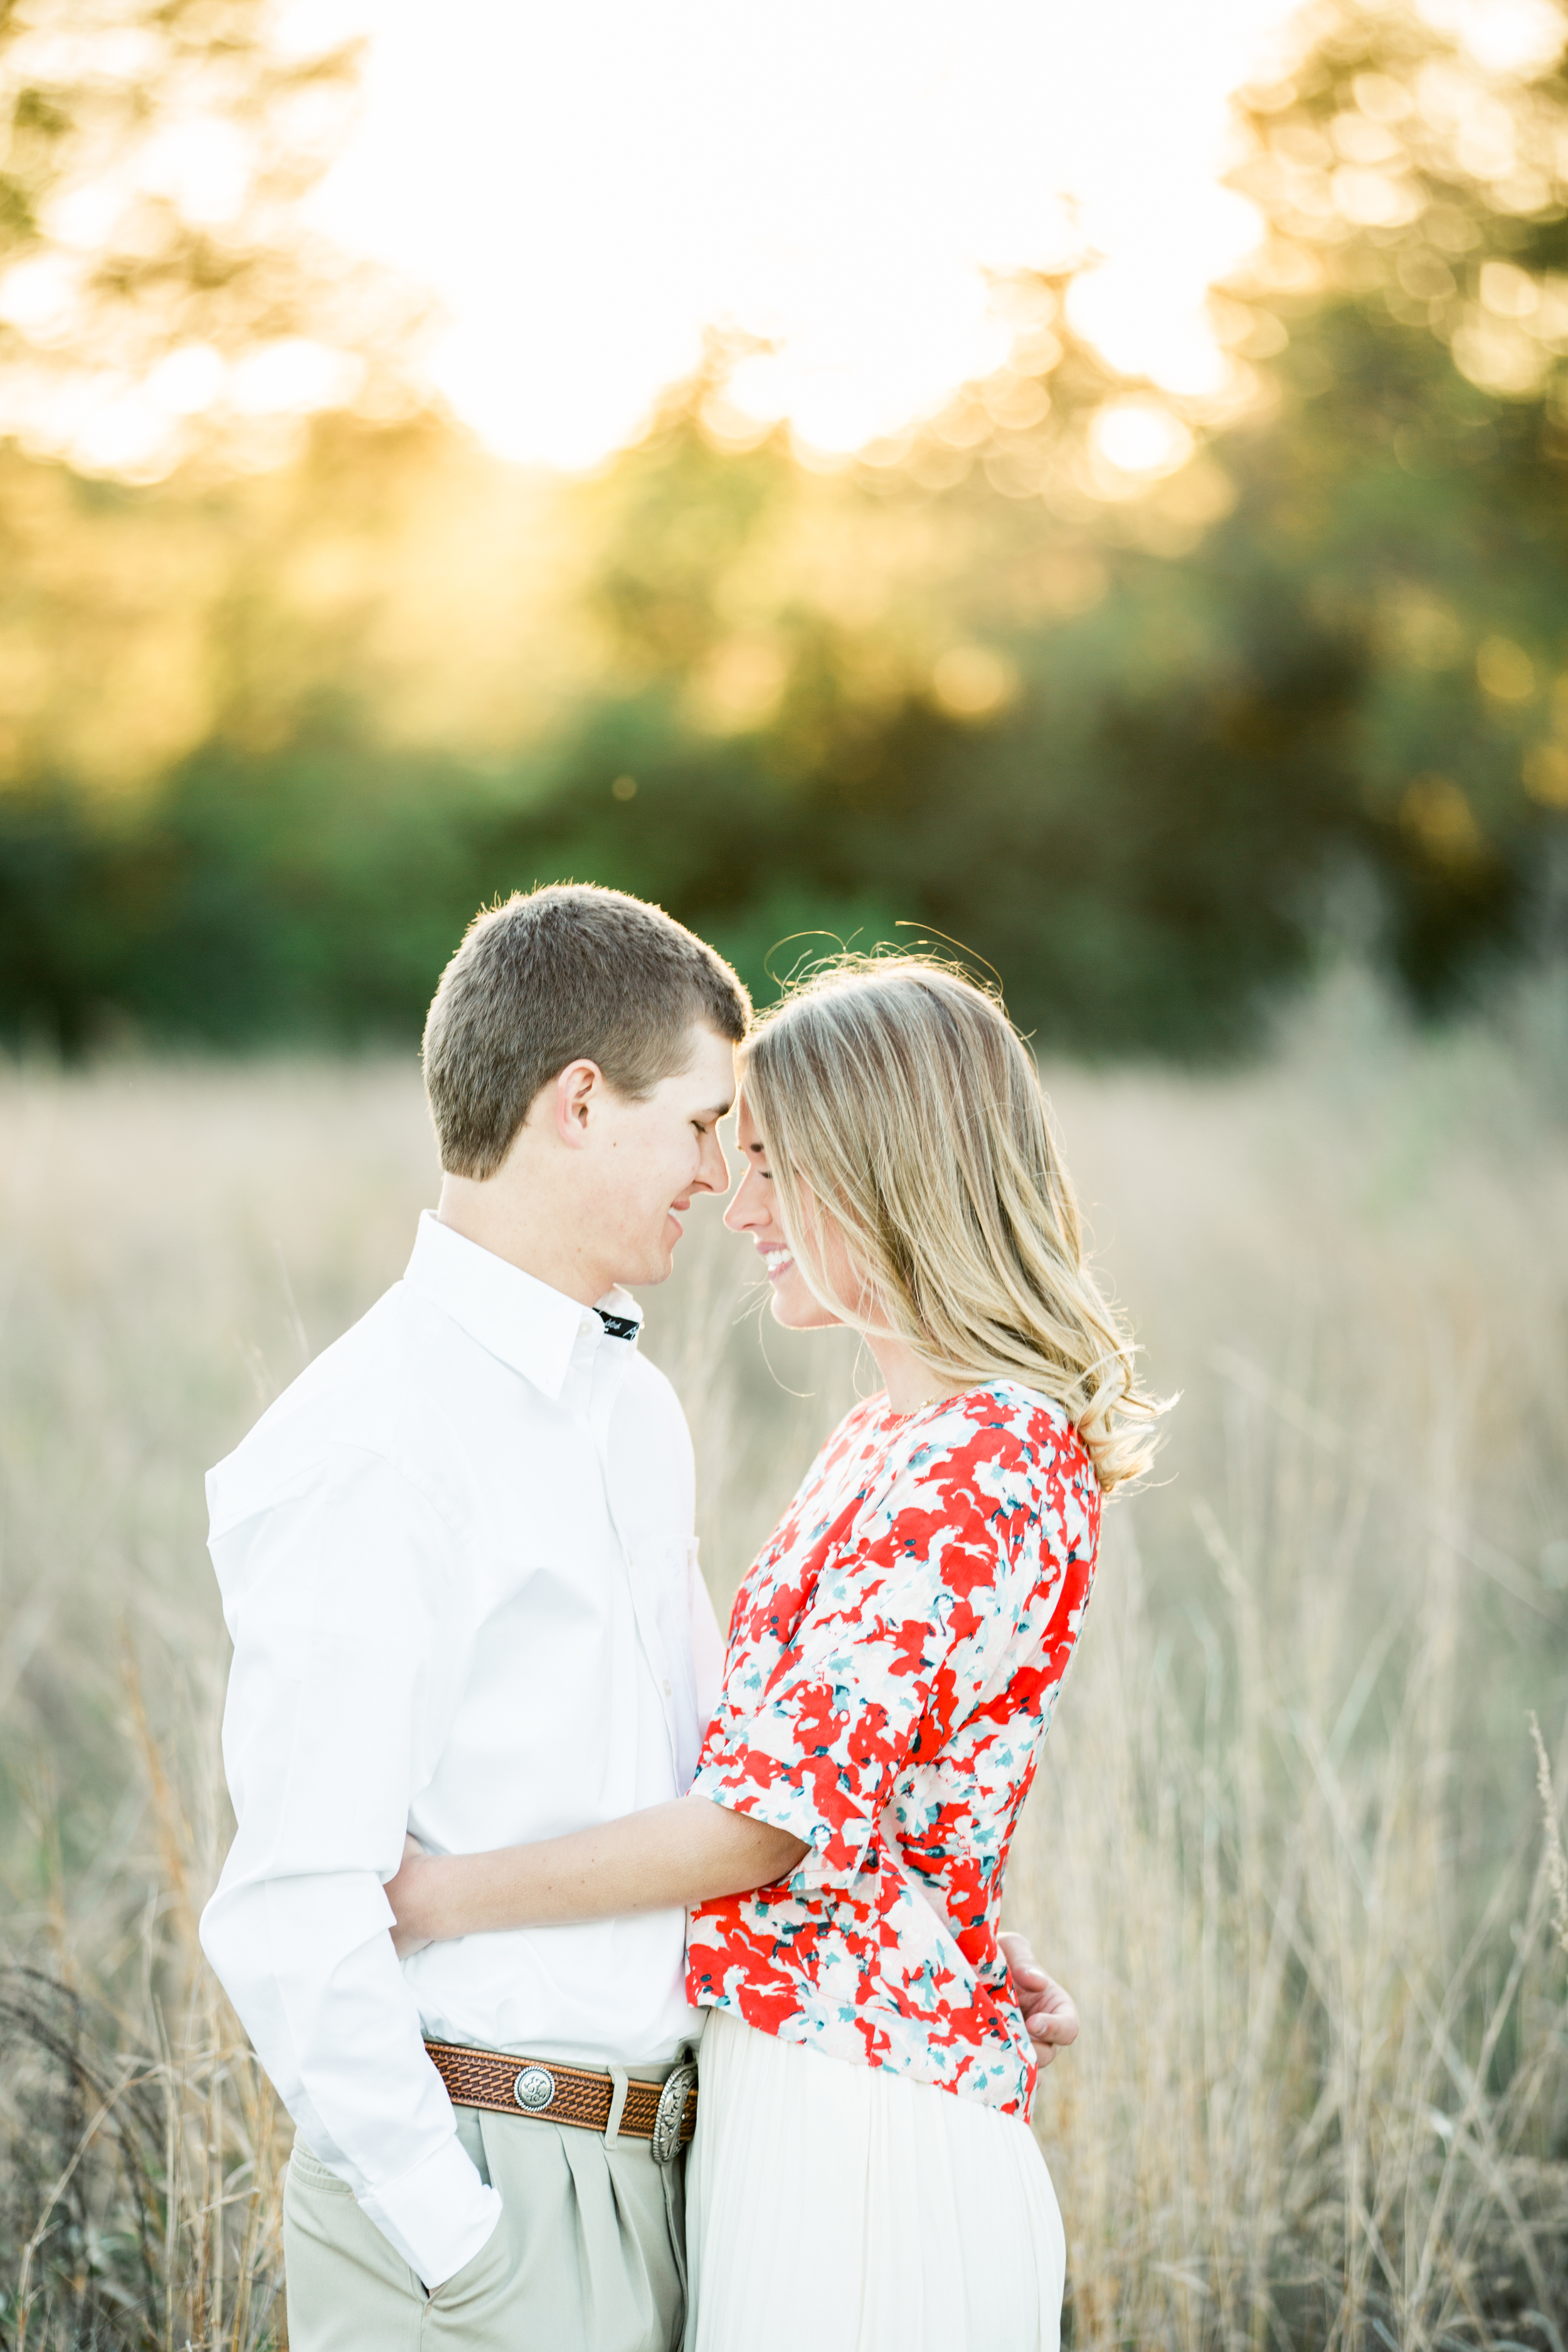 Joines_EngagementCollection-14.jpg